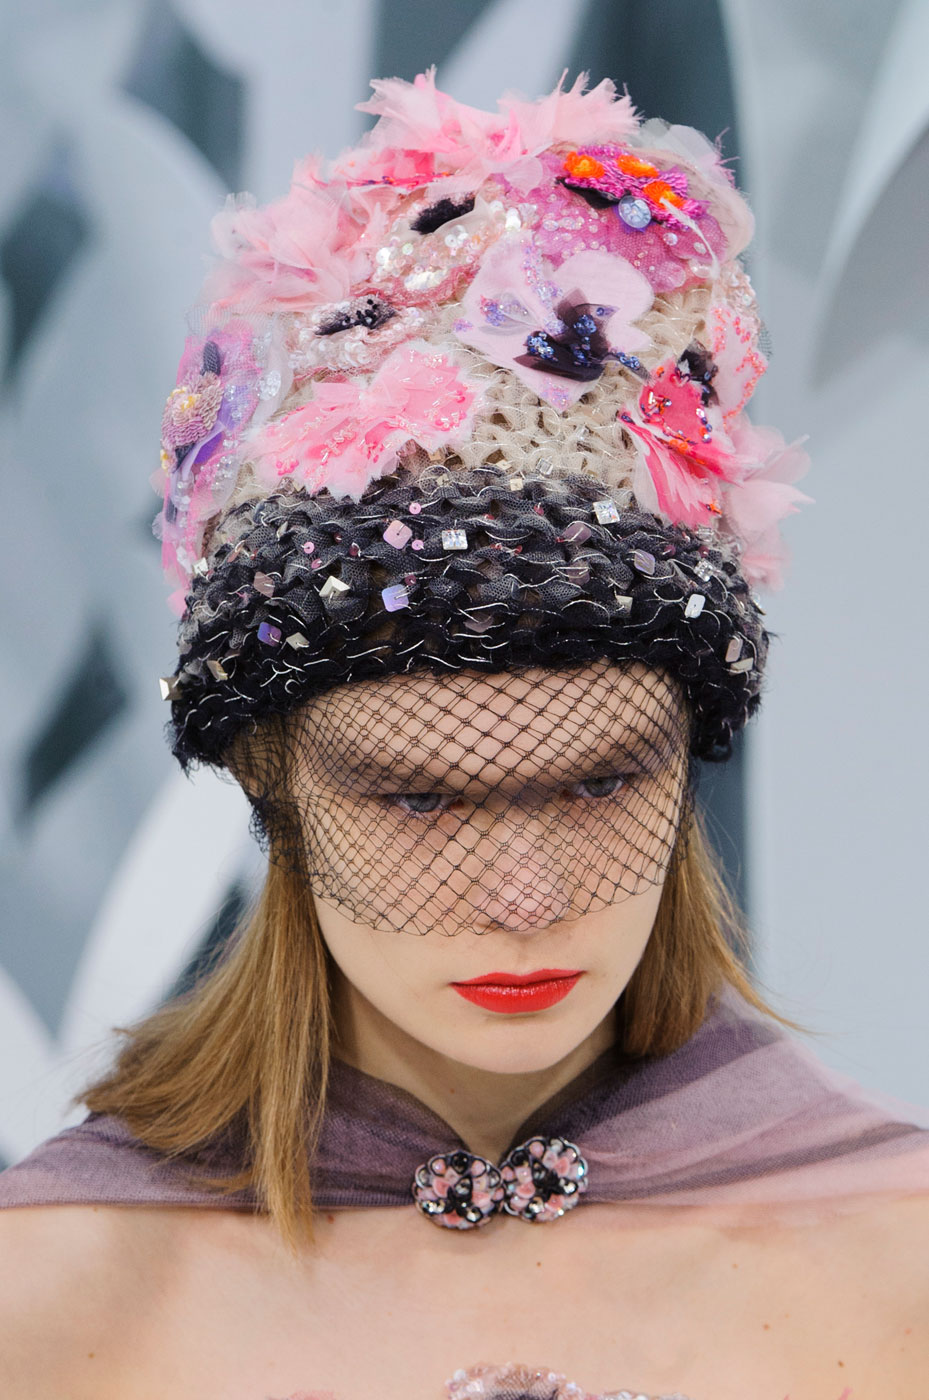 Chanel-fashion-runway-show-close-ups-haute-couture-paris-spring-summer-2015-the-impression-141